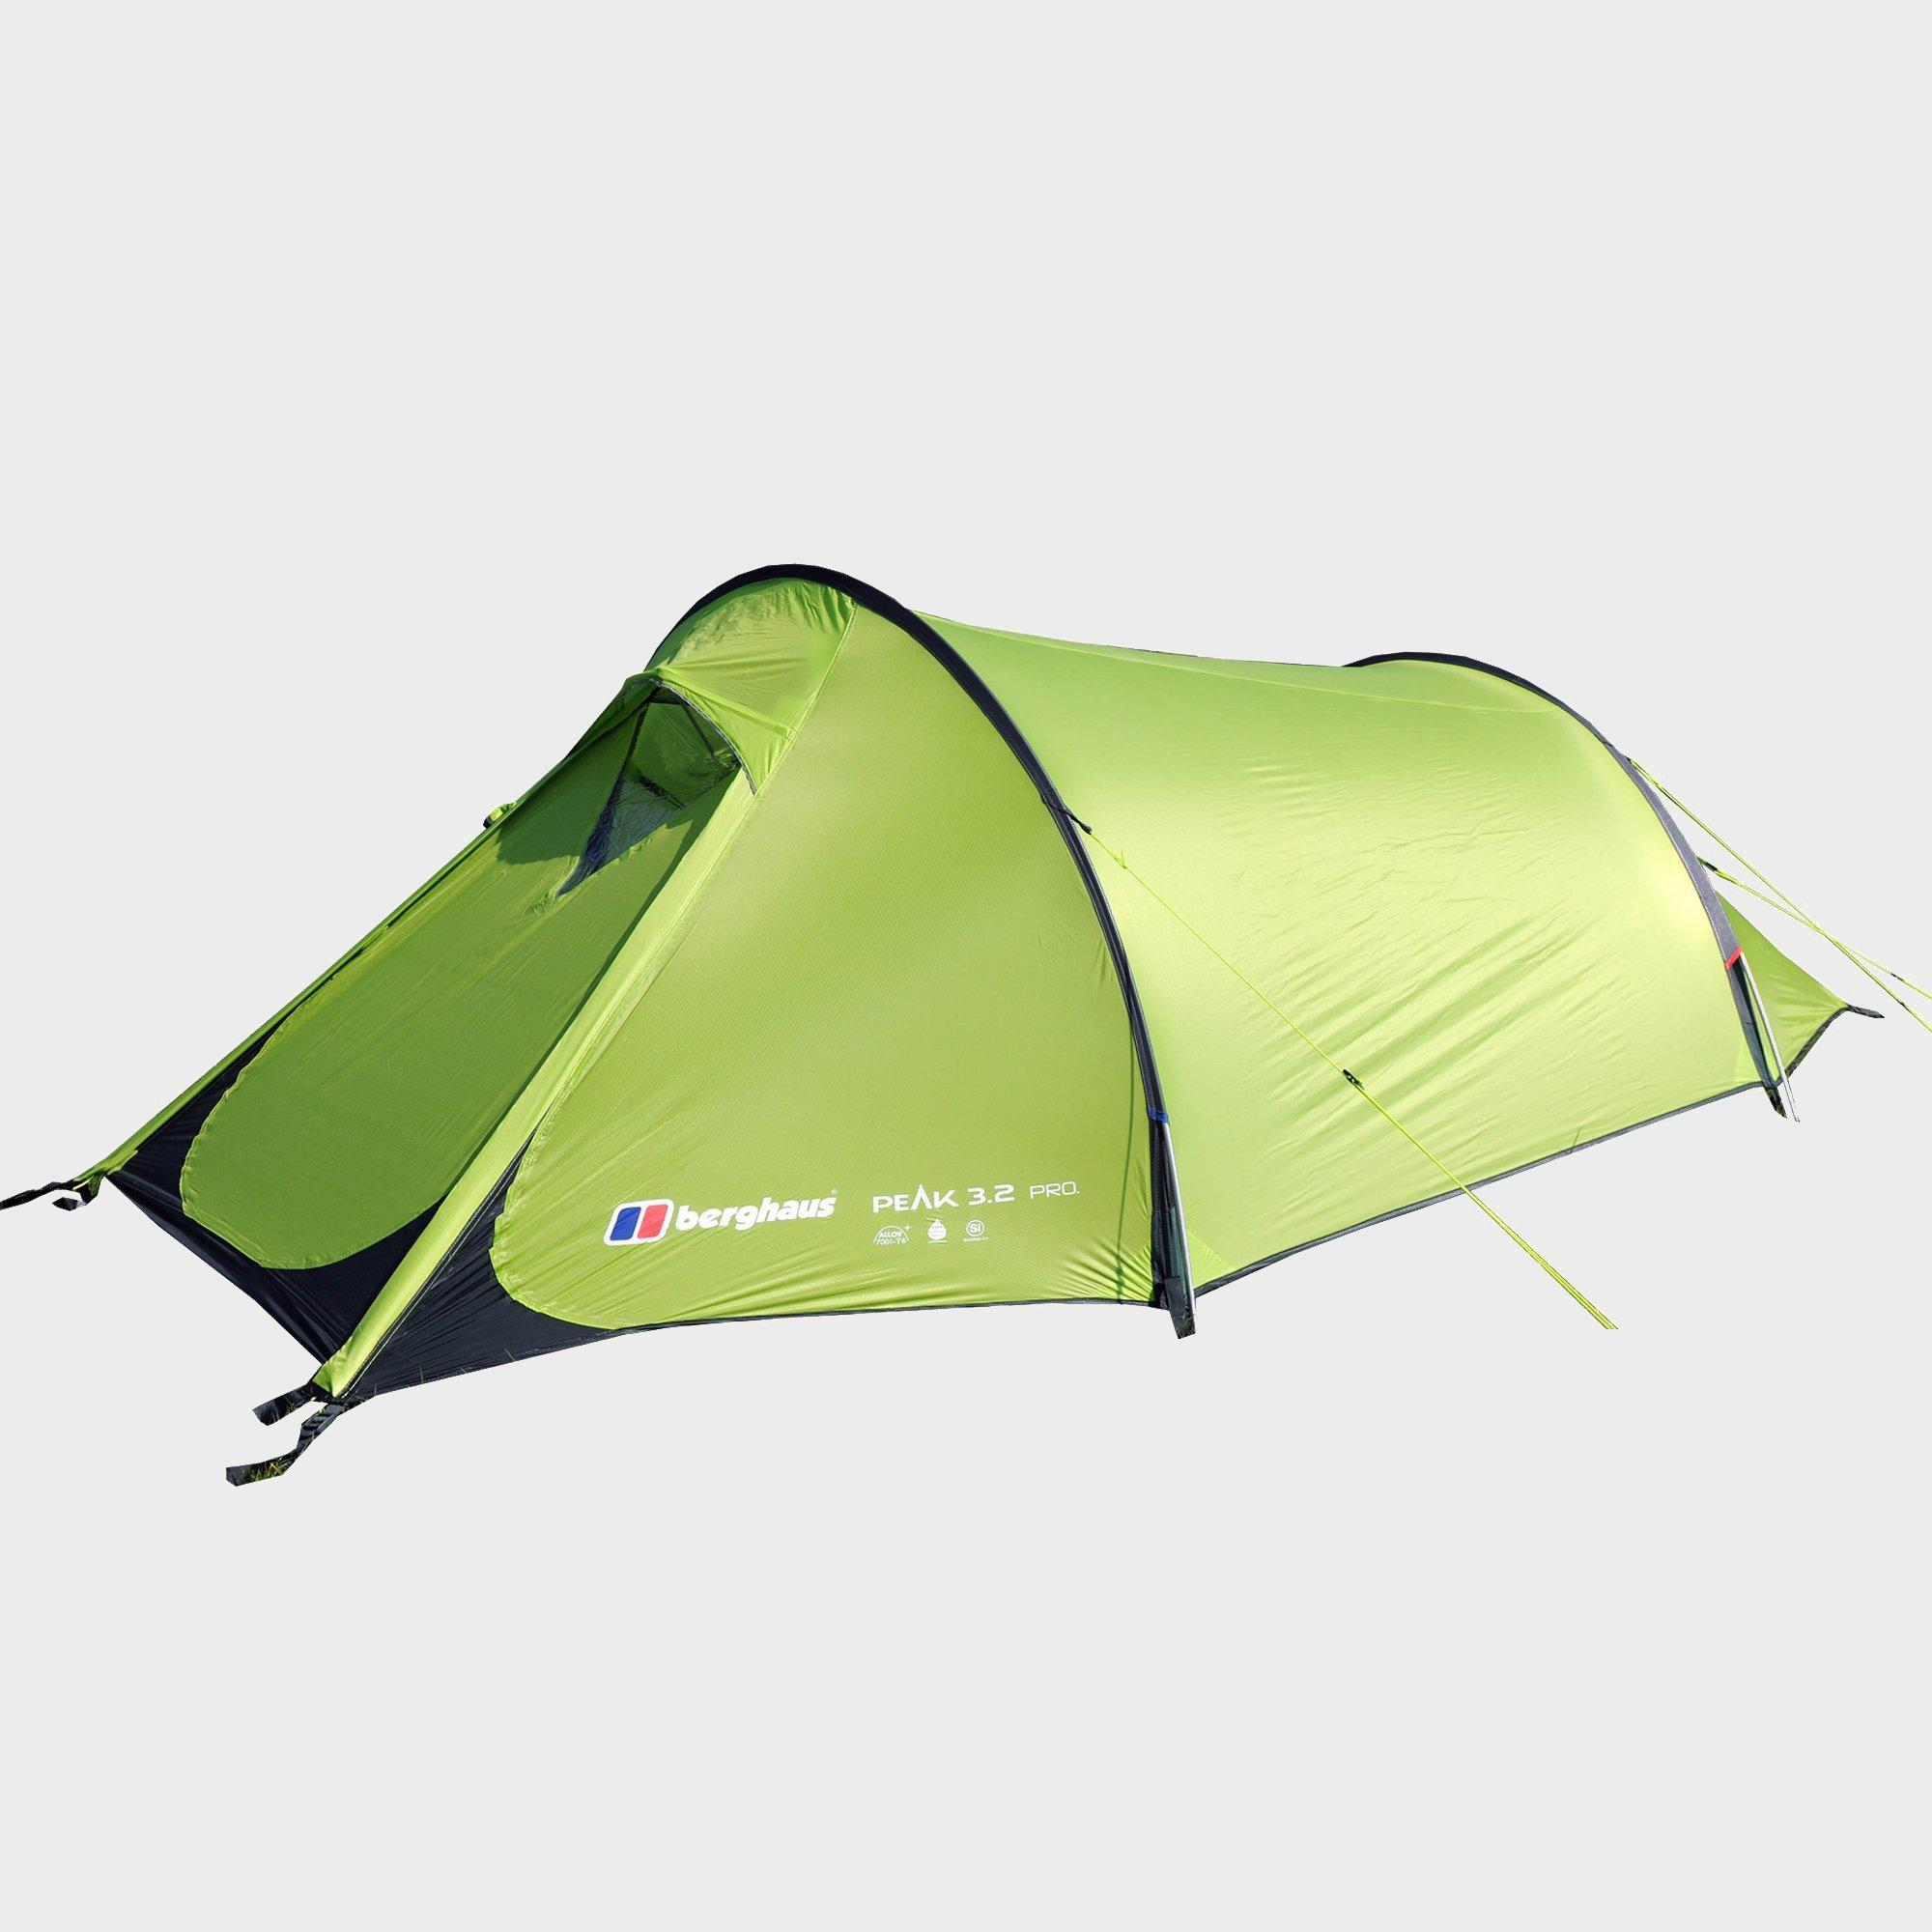 Peak 3.2 Pro Tent  sc 1 st  Millets & Backpacking Tents | Lightweight 1 u0026 2 Man Tents | Millets